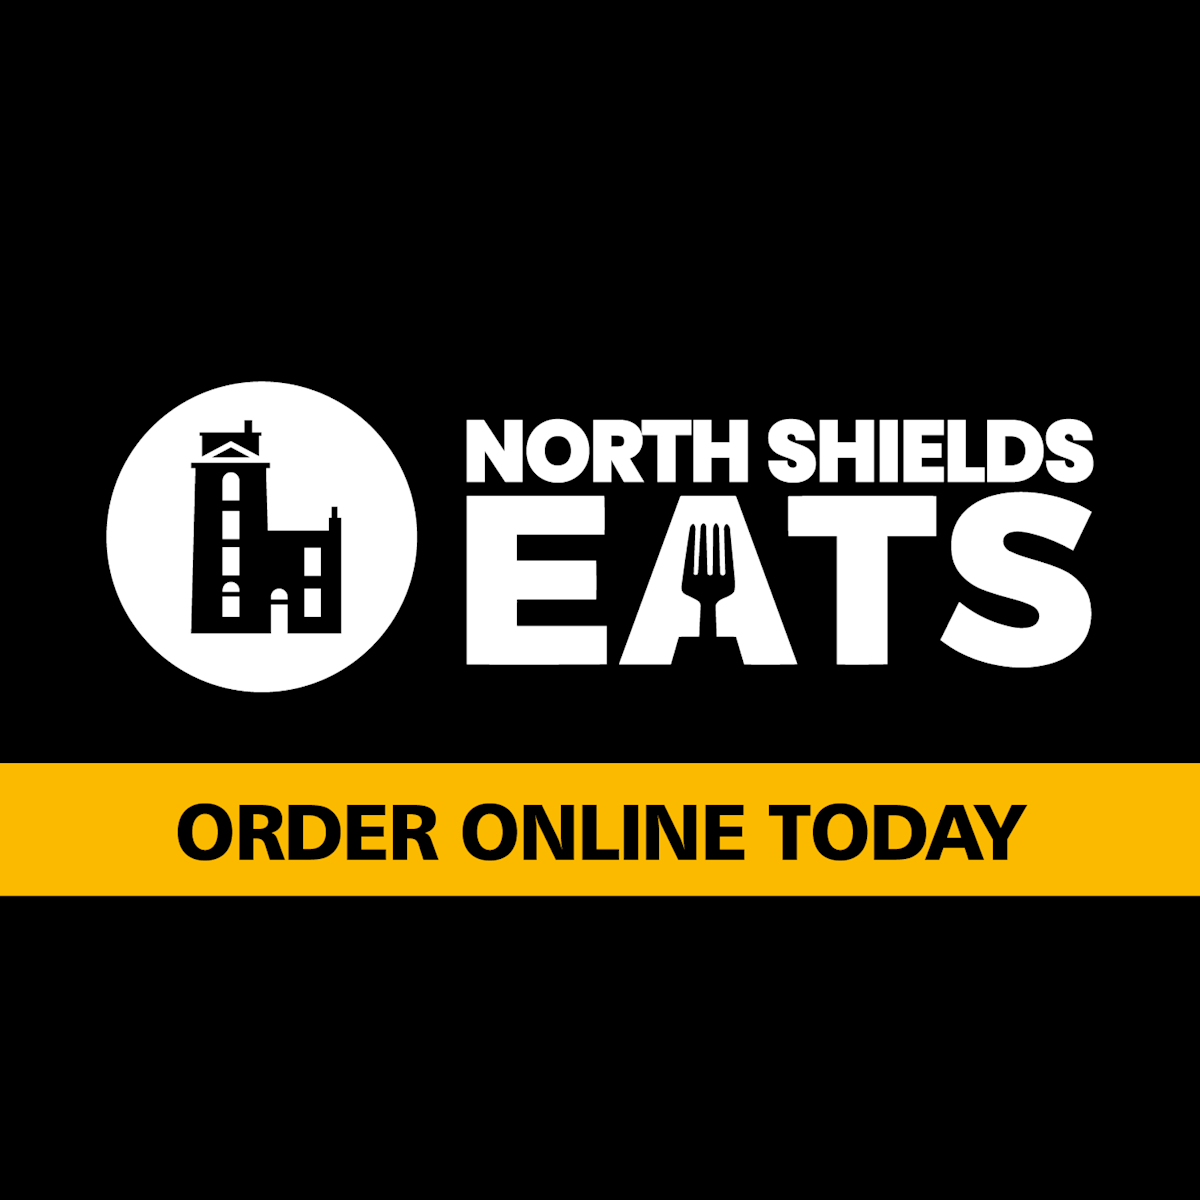 North Shields Eats